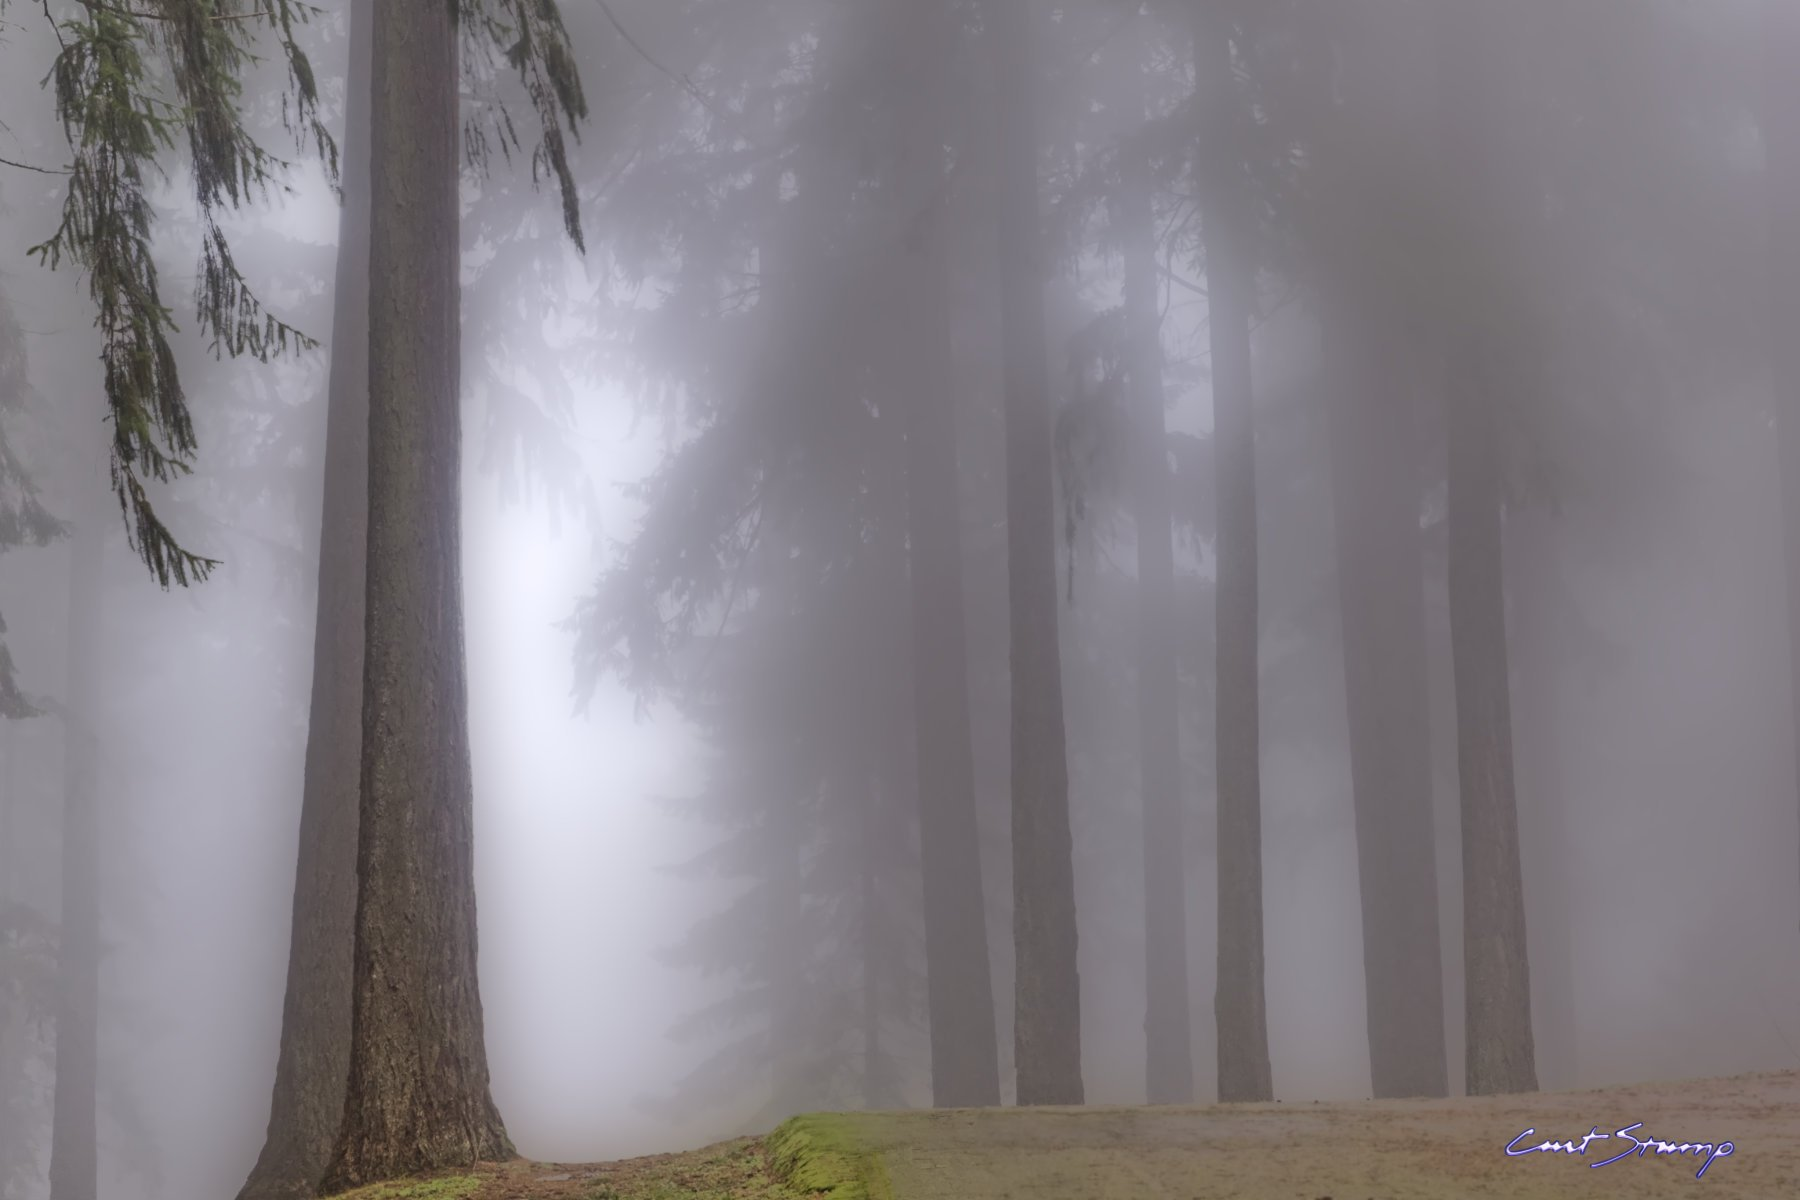 Fog and trees in Mount Tabor Park, Portland, Oregon.